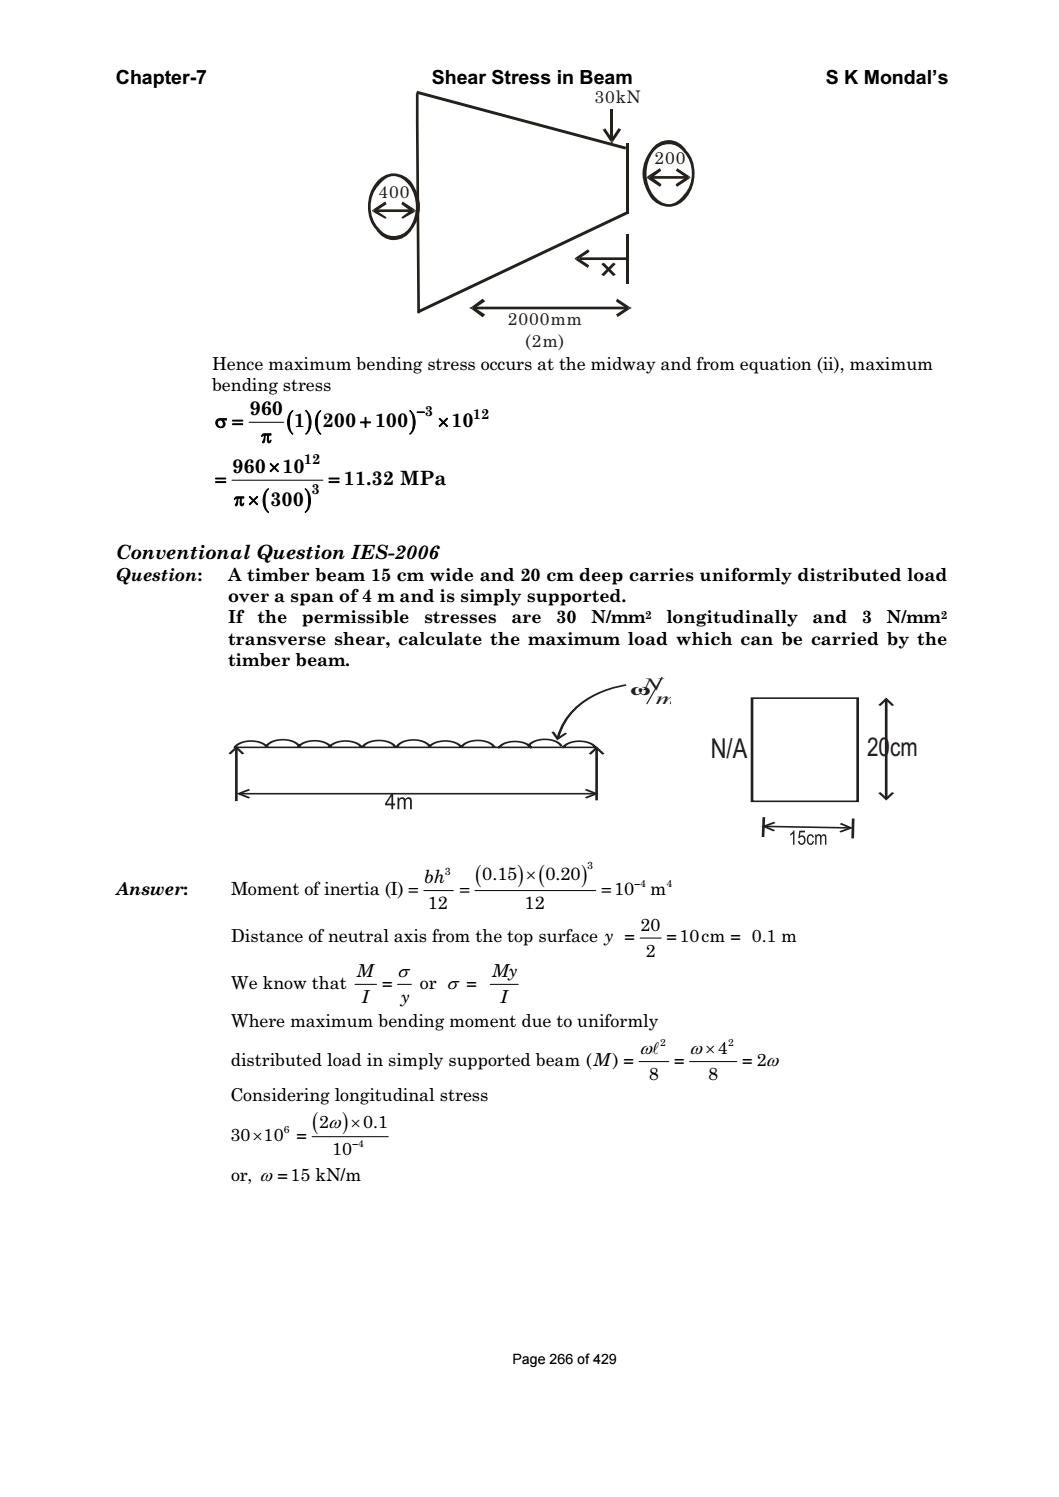 Strength Of Materials By S K Mondal Pdf Sdharmaraj Issuu Moment Diagram For Uniformly Distributed Load On Simply Supported Beam